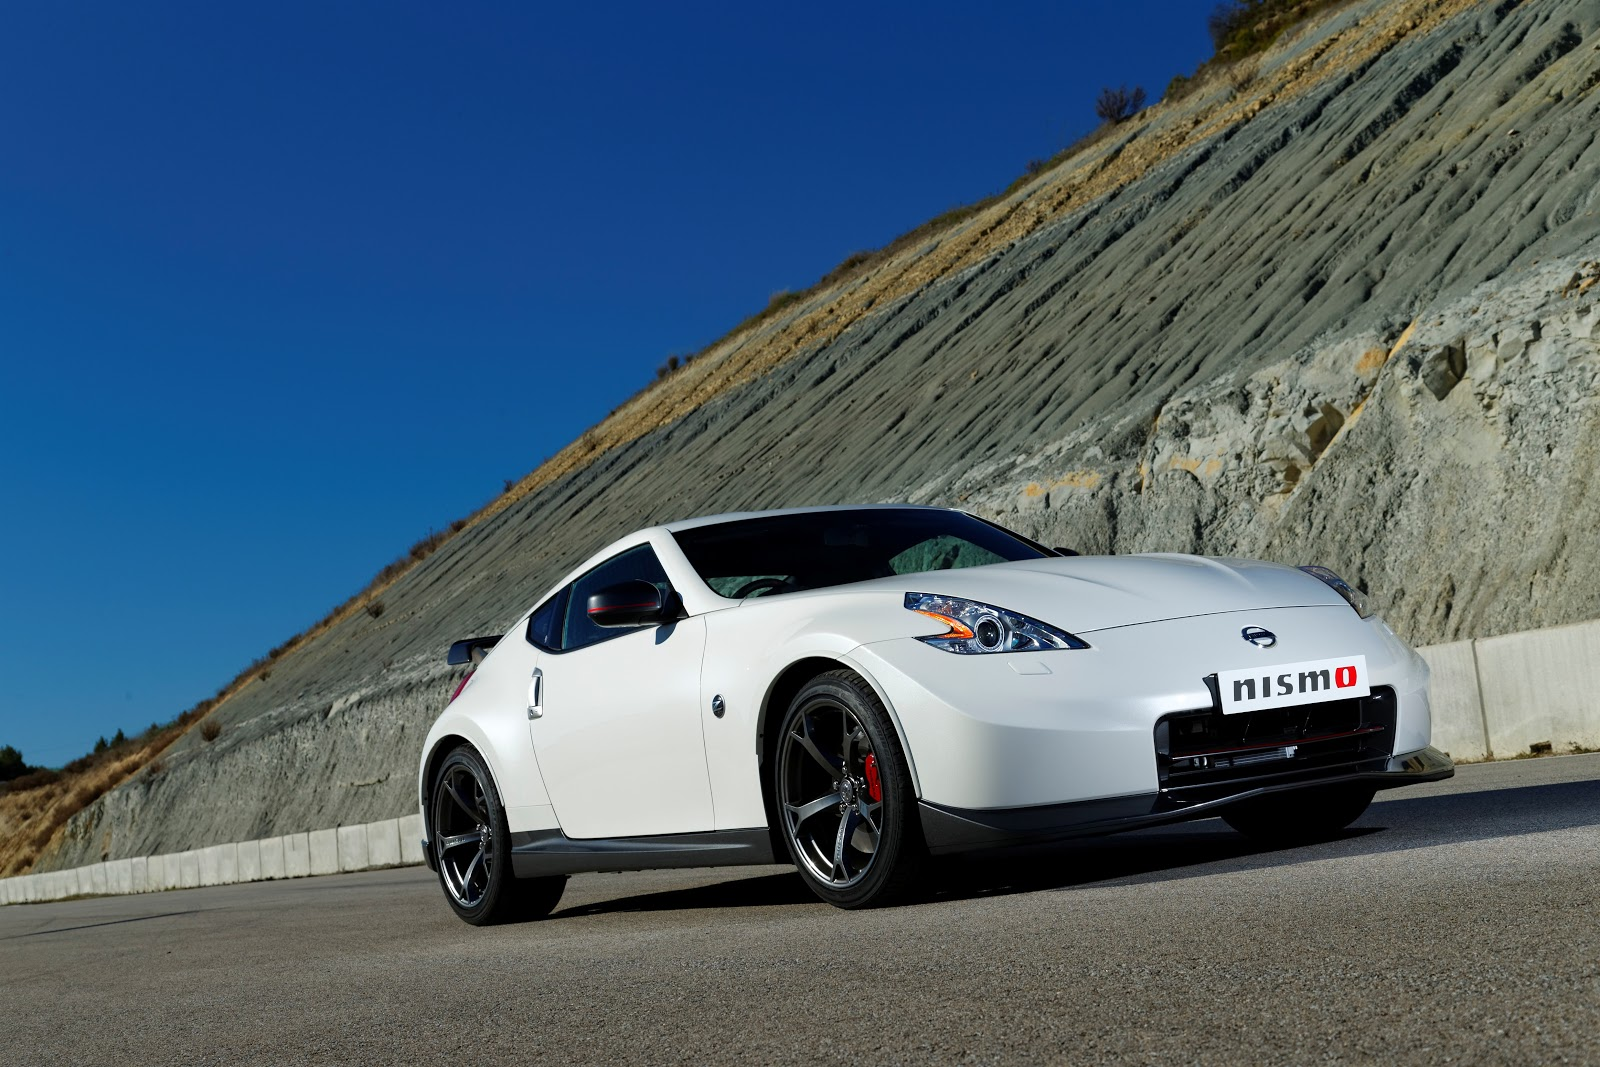 The 370Z Nismo Uses A Tuned Version Of The 370Zu0027s 3.7 Litre V6, Which  Produces 339bhp And Does 0 62mph In 5.2 Seconds. The Major Changes To The  Engine ...